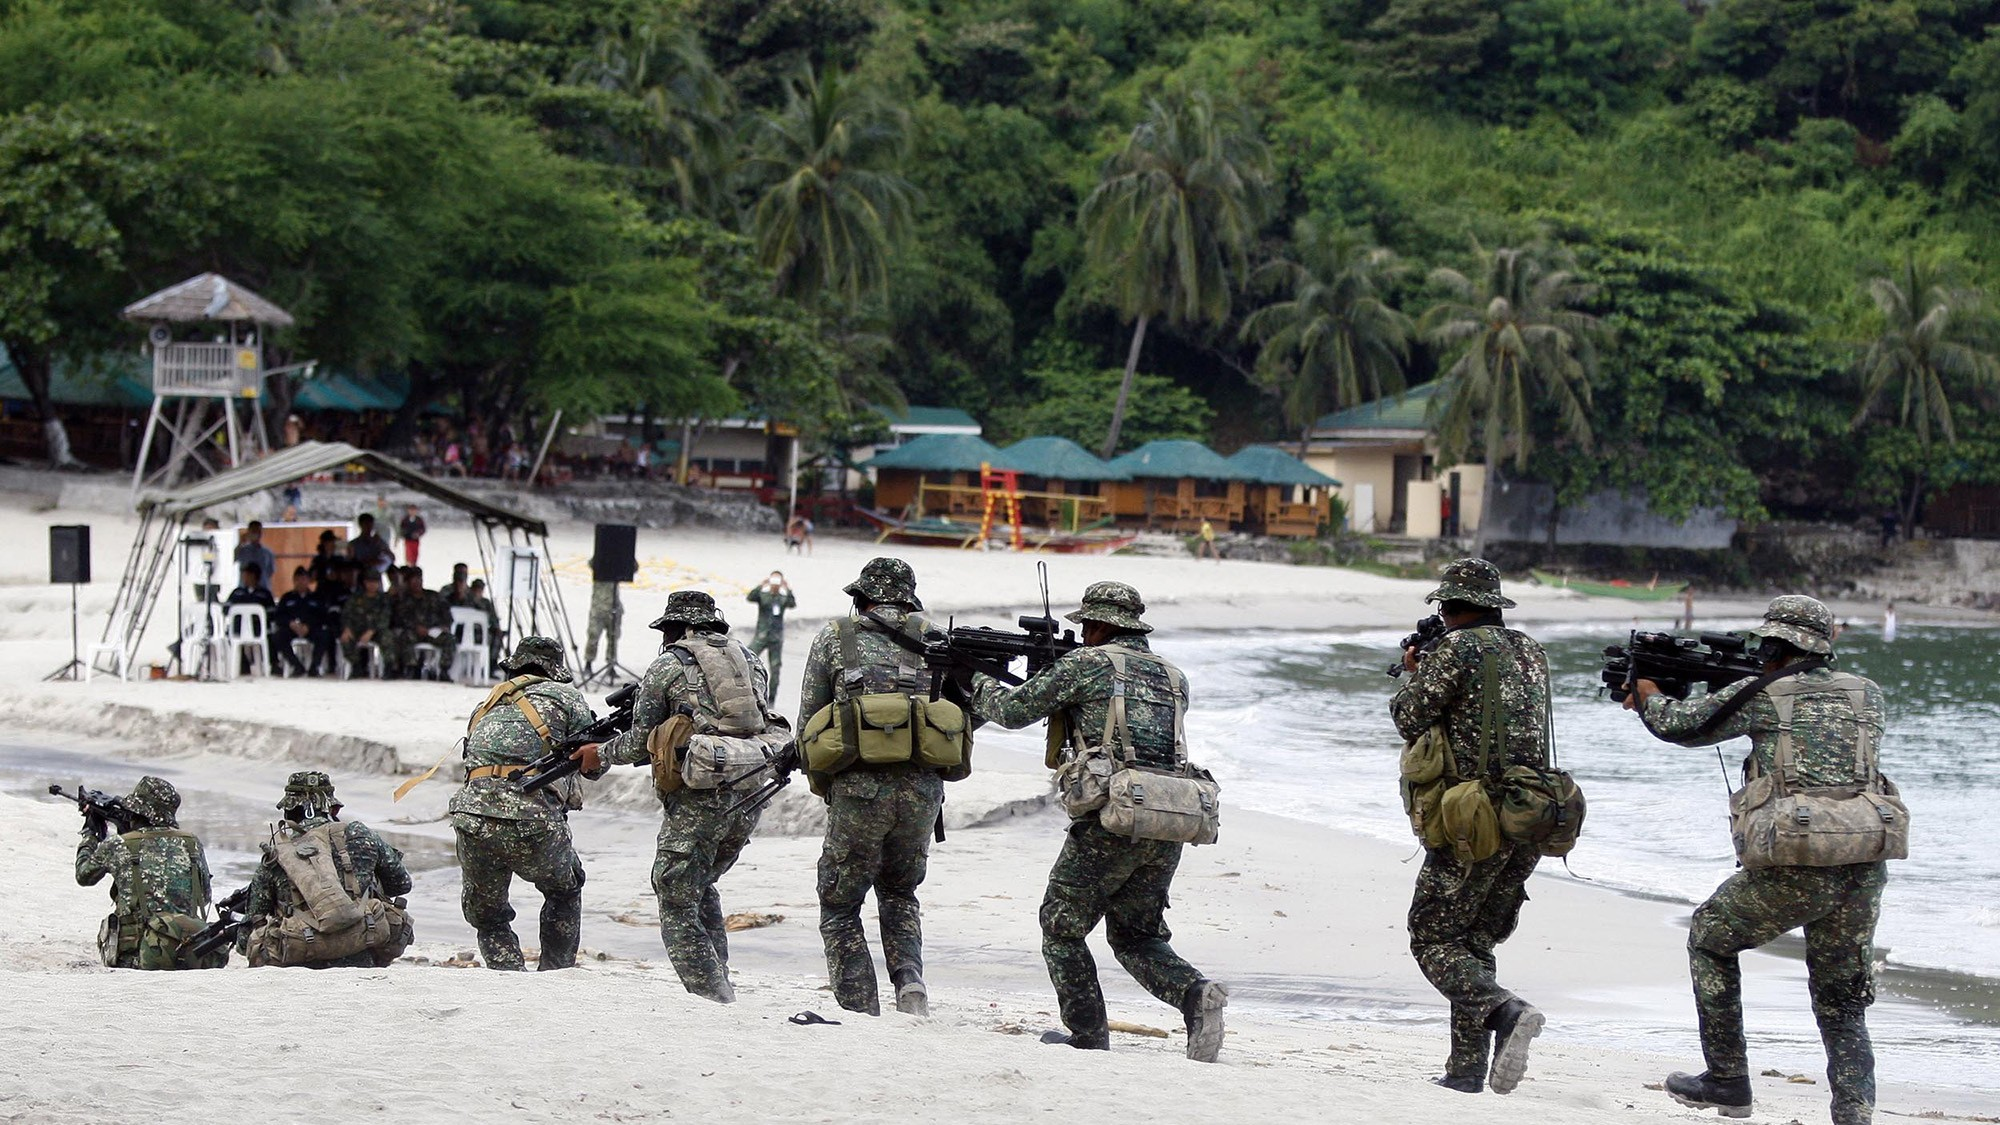 A New Incident Between China and the Philippines May Be Looming